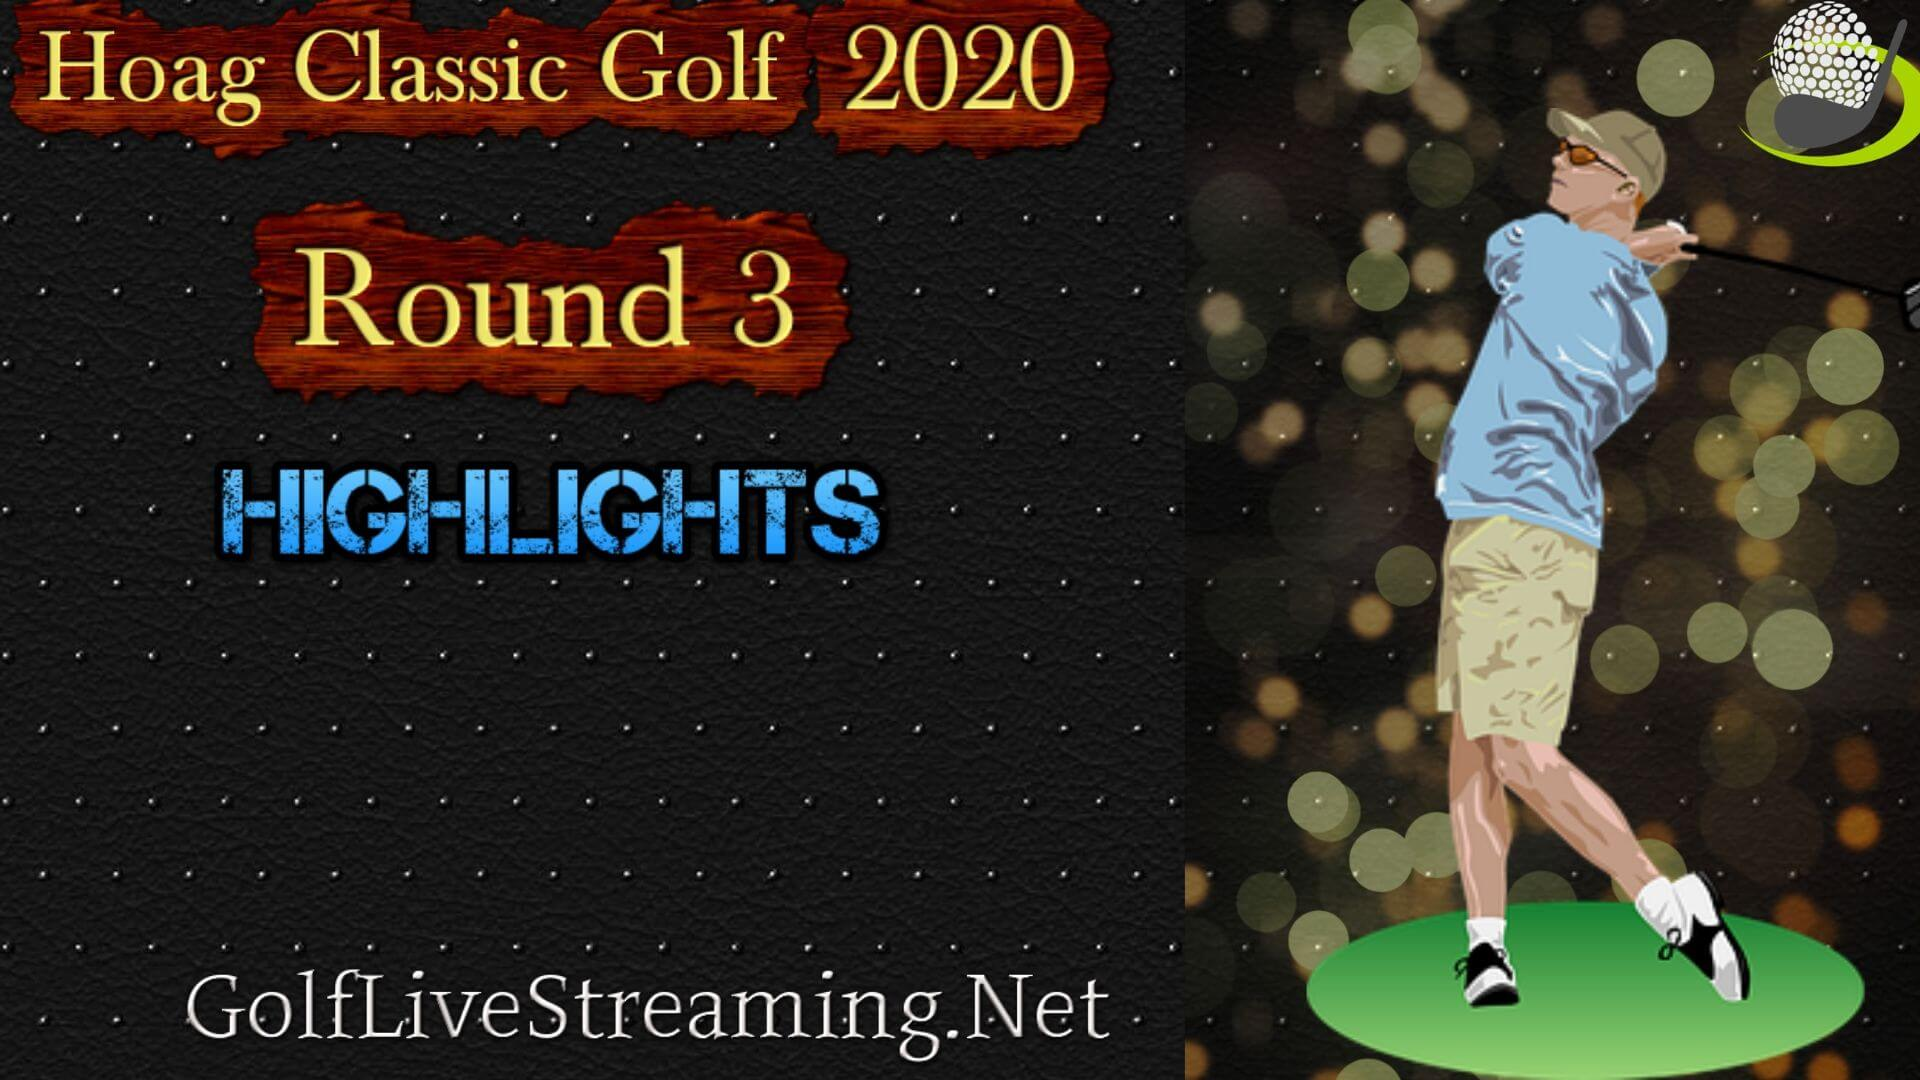 Hoag Classic Golf Rd 3 Highlights 2020